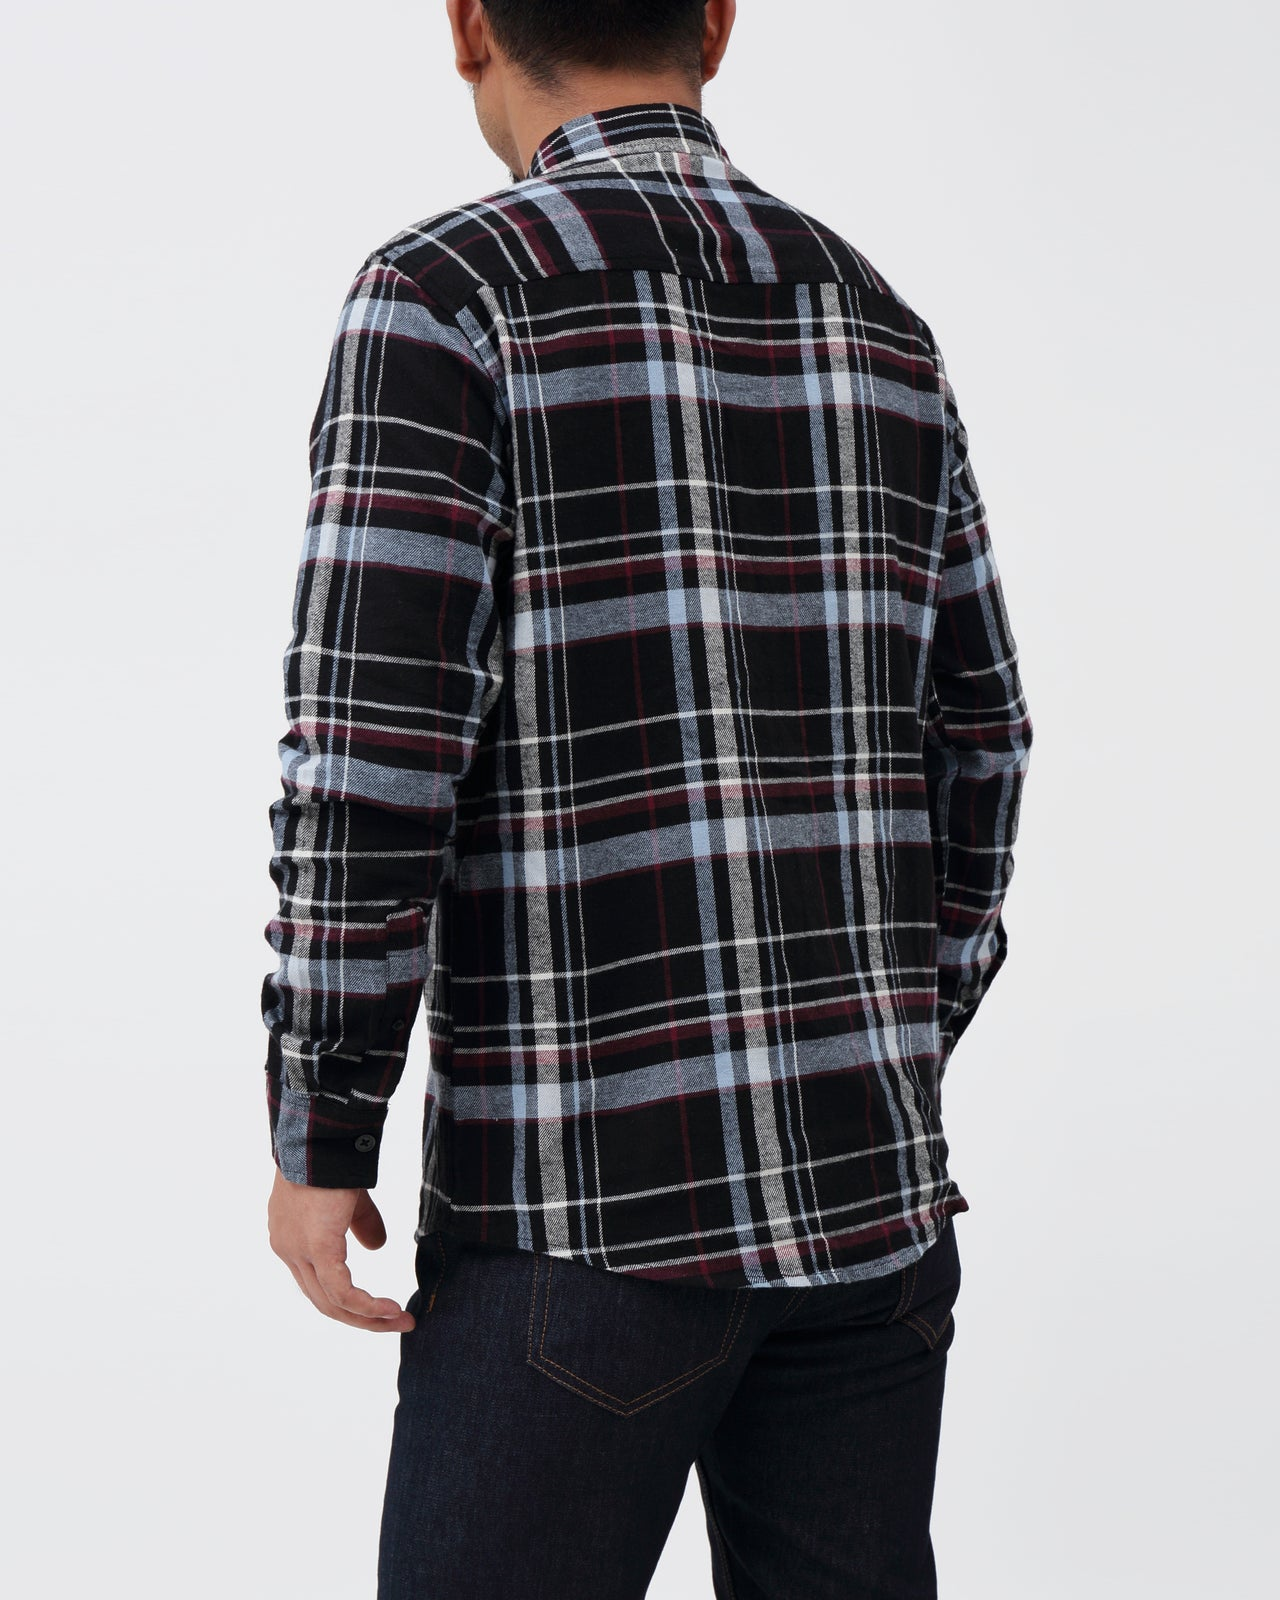 Flannel Plaid Shirt - Color: Black | Black